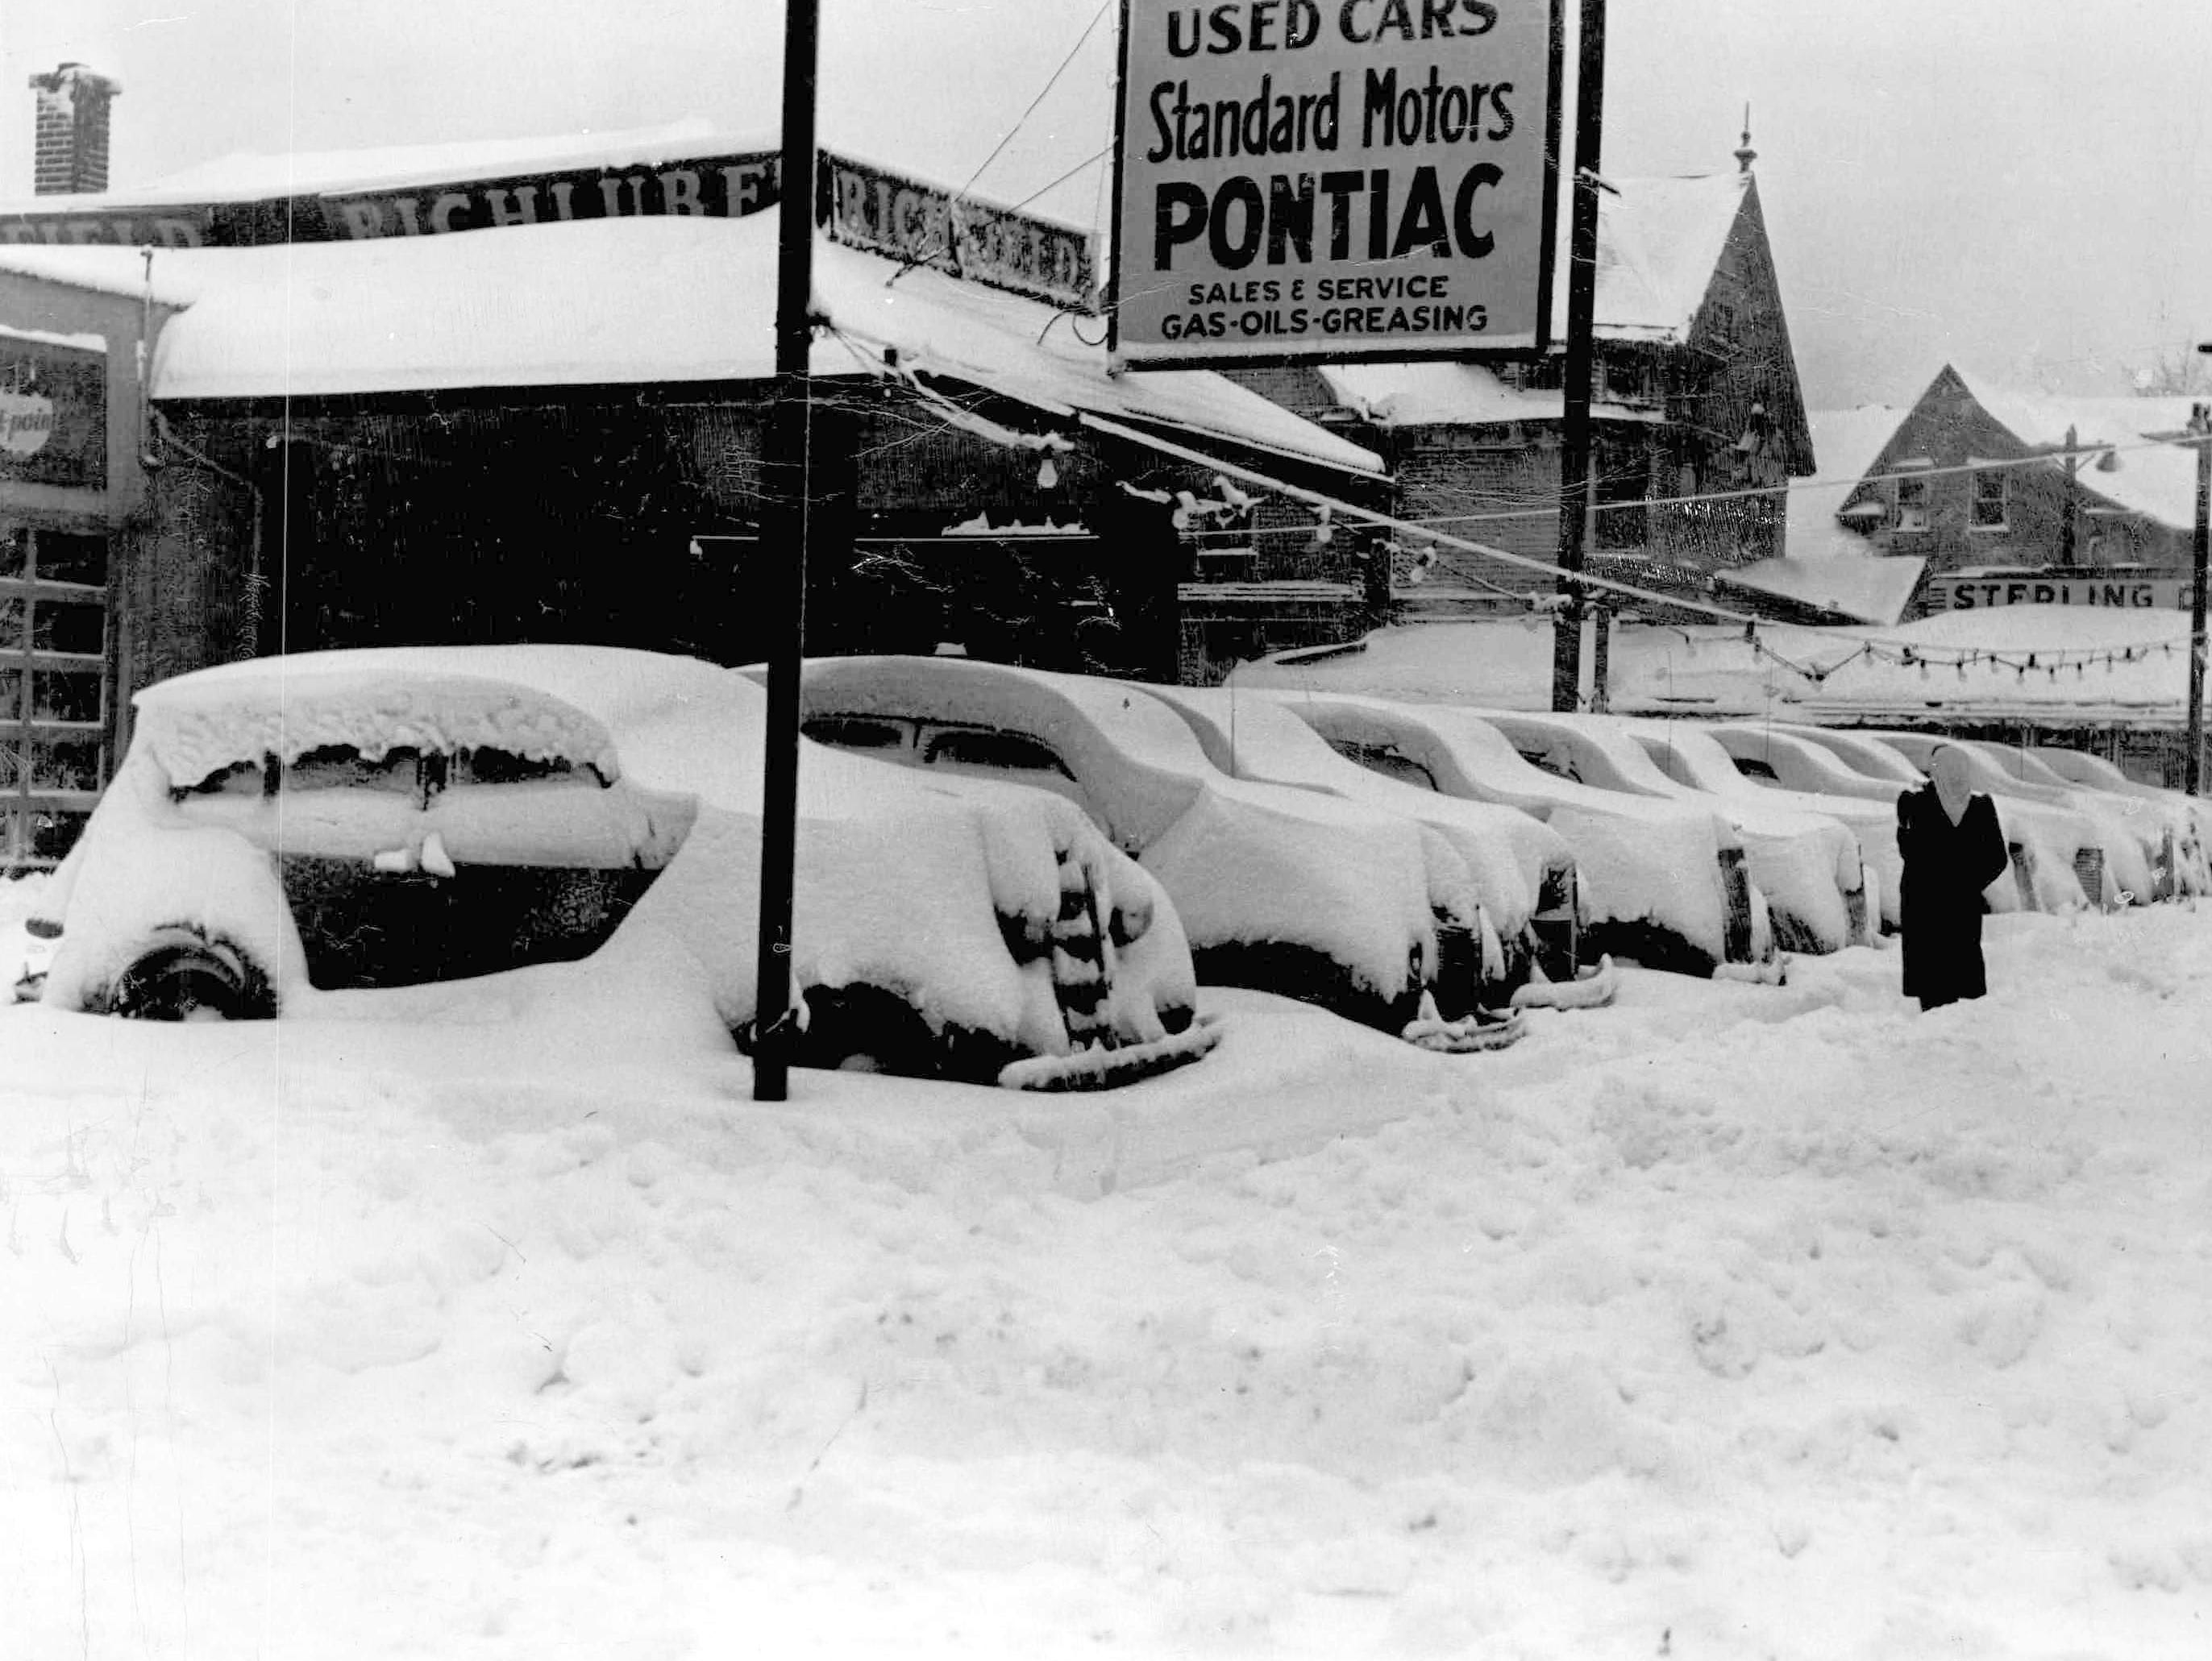 This photo from 1944 shows cars in a sales lot covered with snow following a storm.